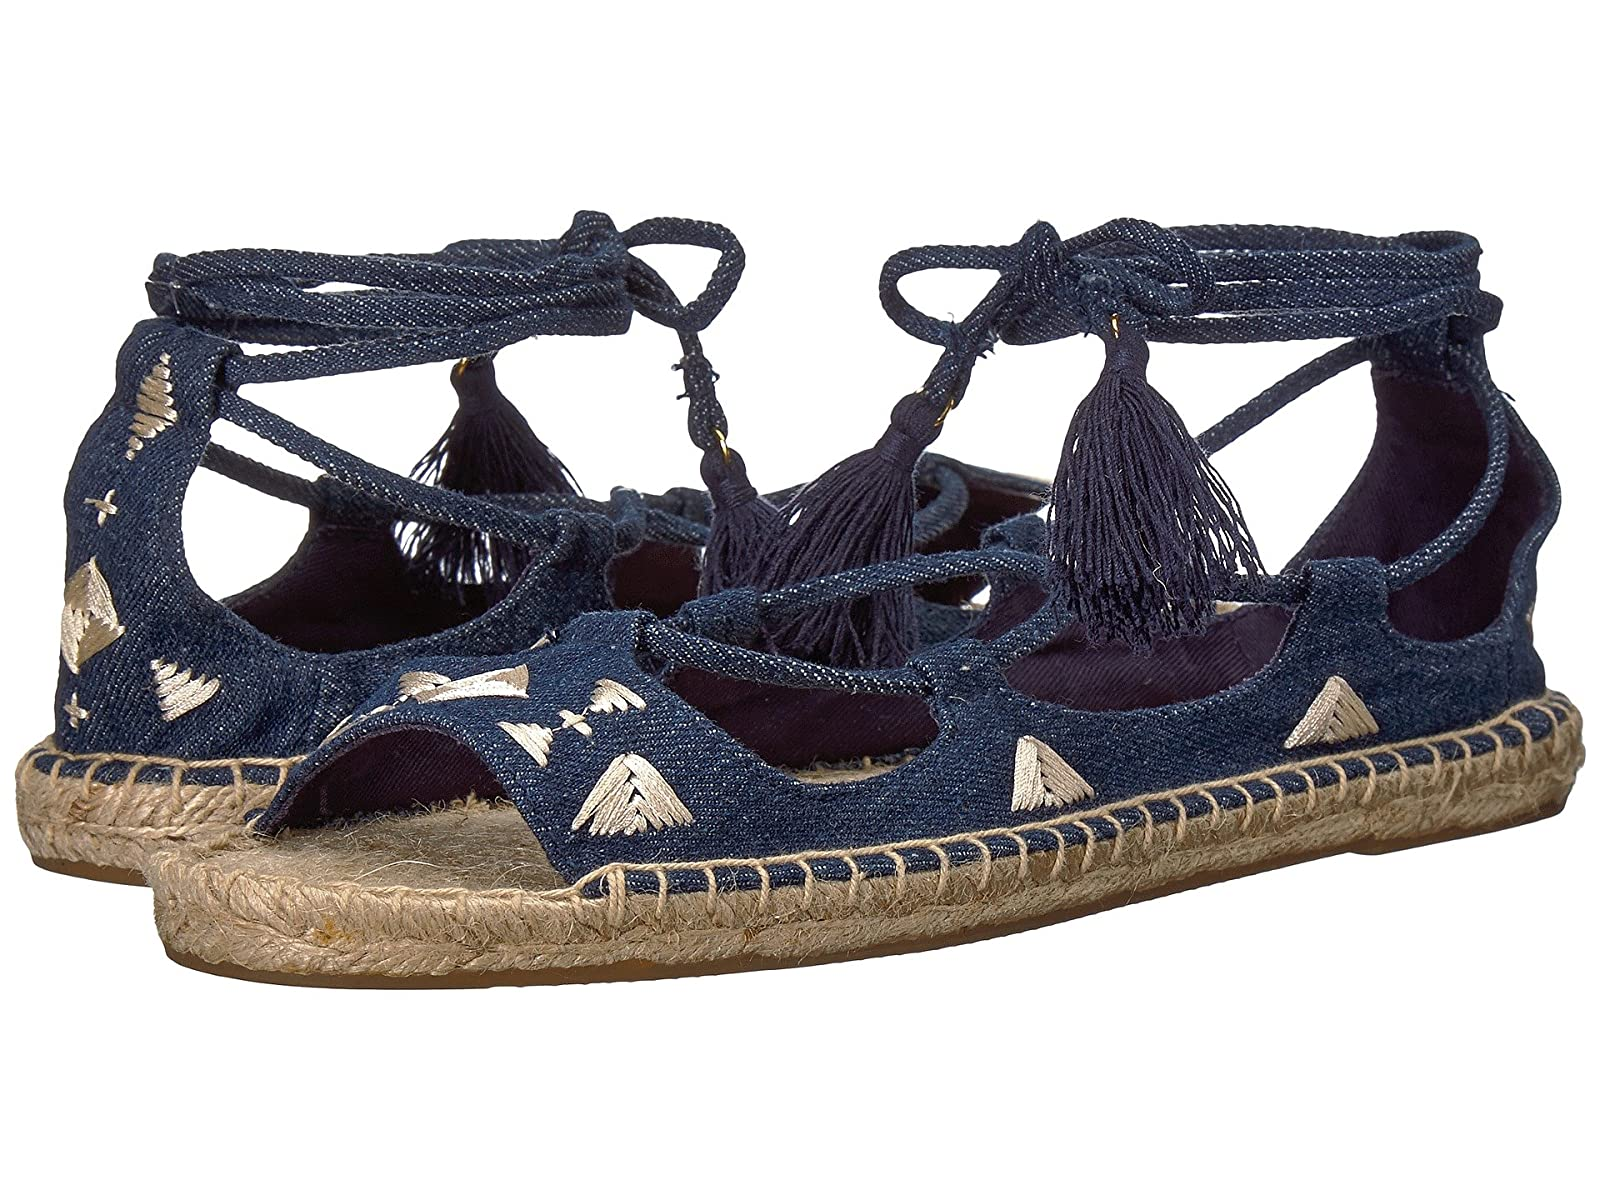 Soludos Embroidered Tie UpCheap and distinctive eye-catching shoes